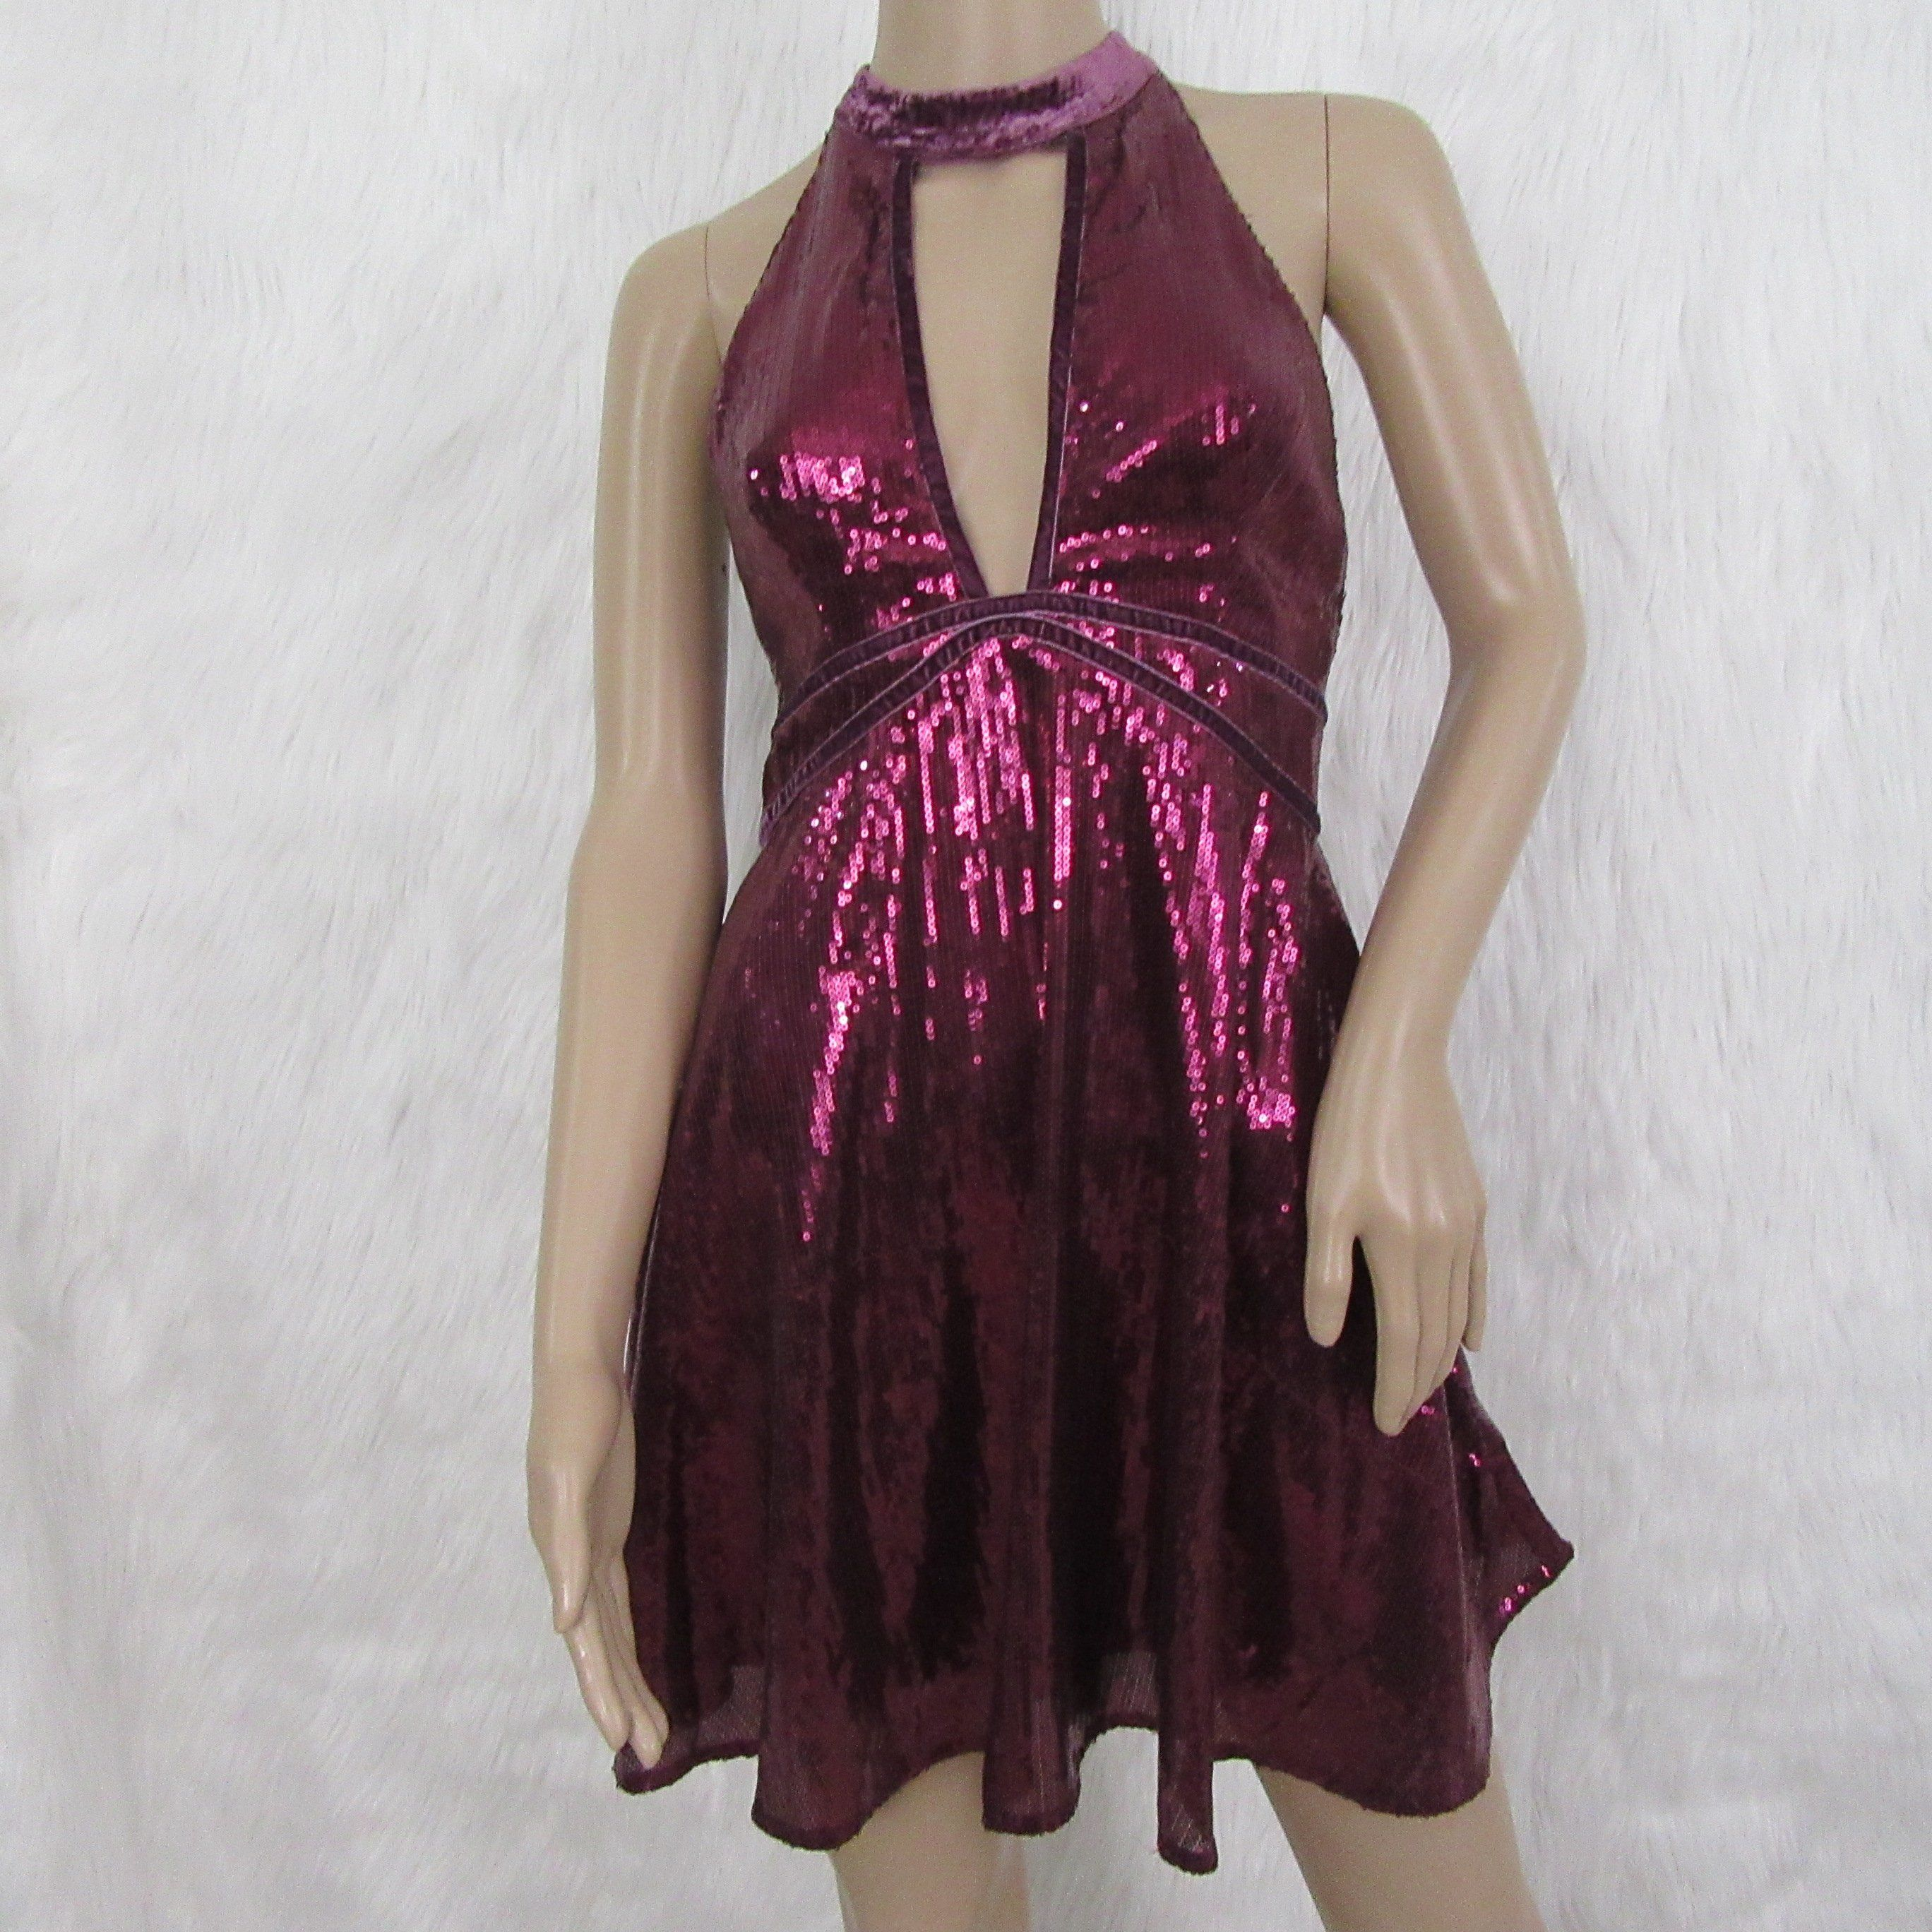 e5144d4a4da Free People Women s Plum Sequin and Velvet Fit and Flare Dress ...